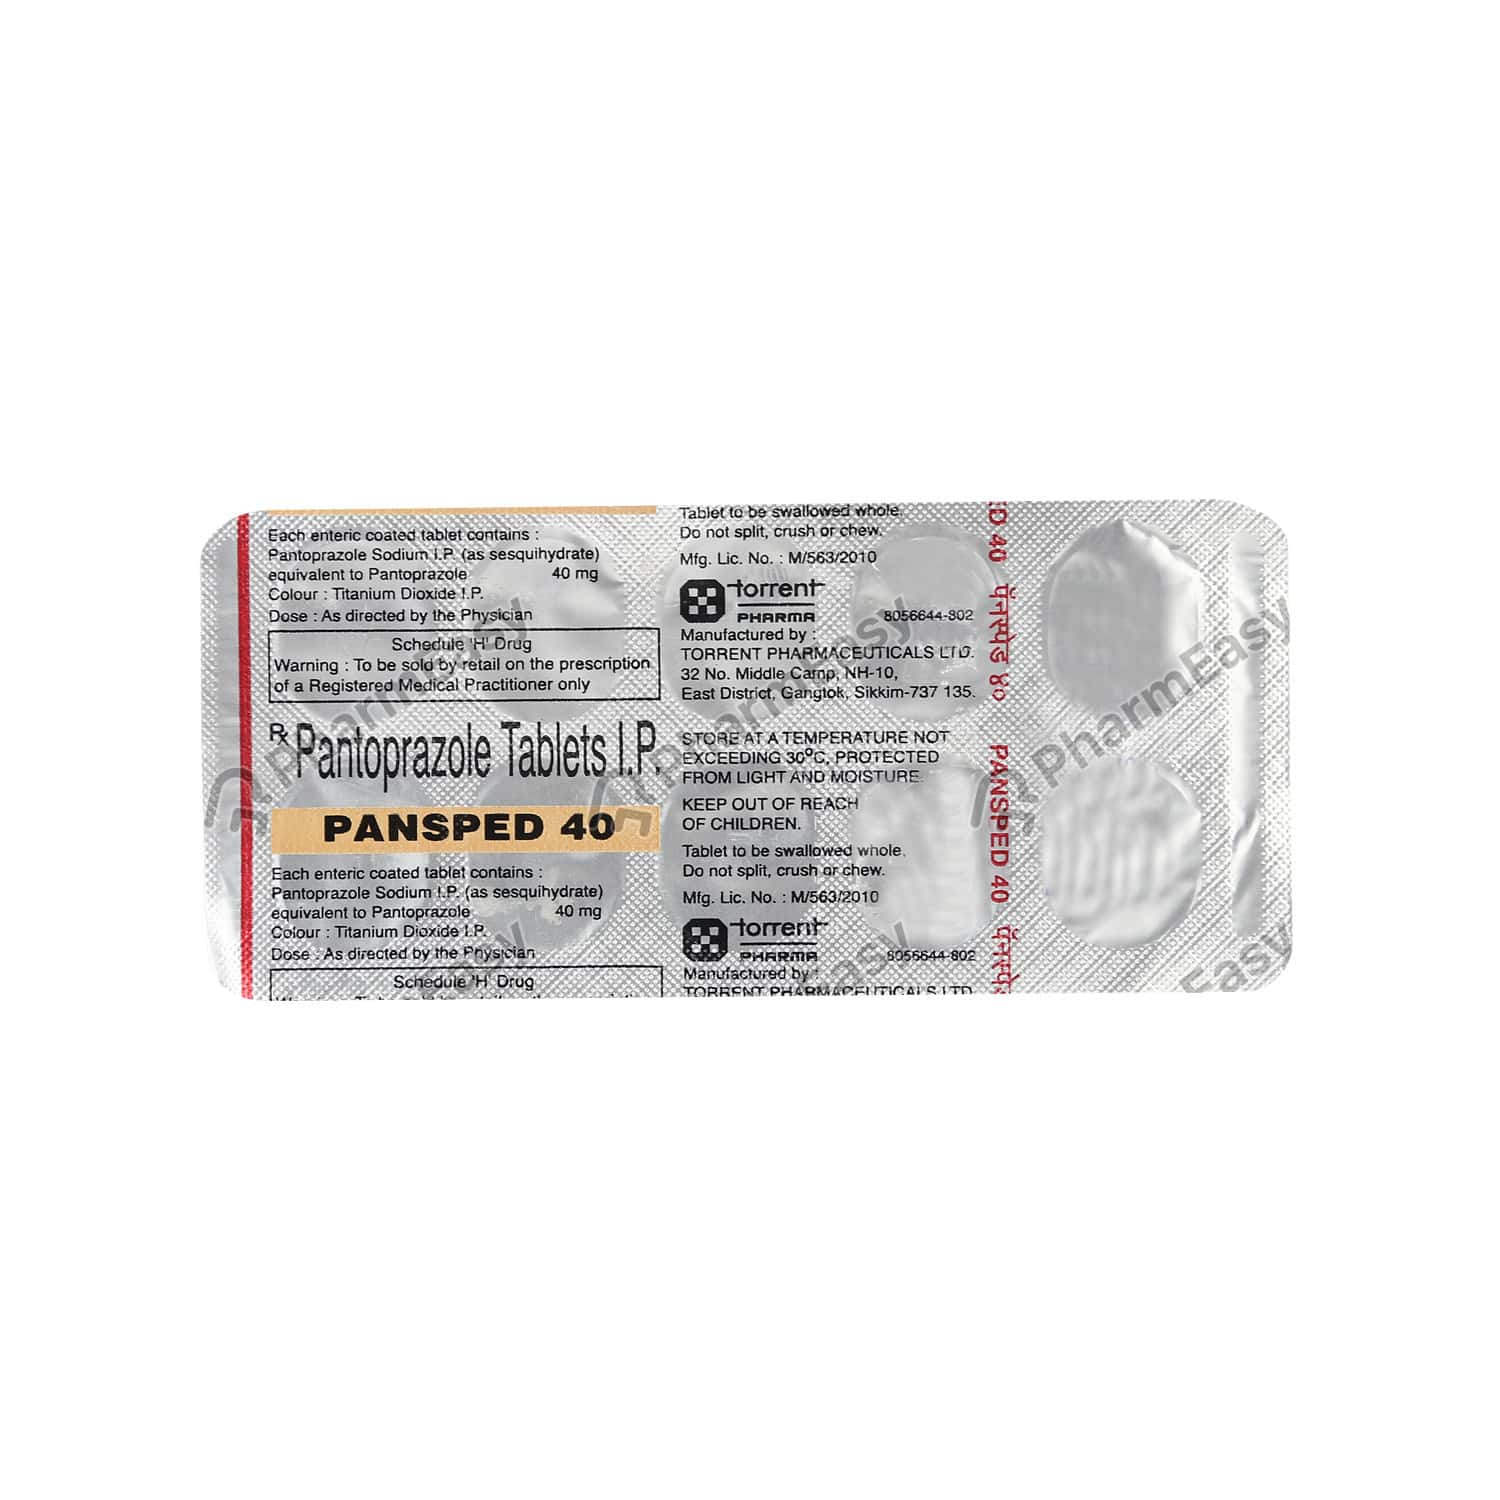 Pansped 40mg Tablet